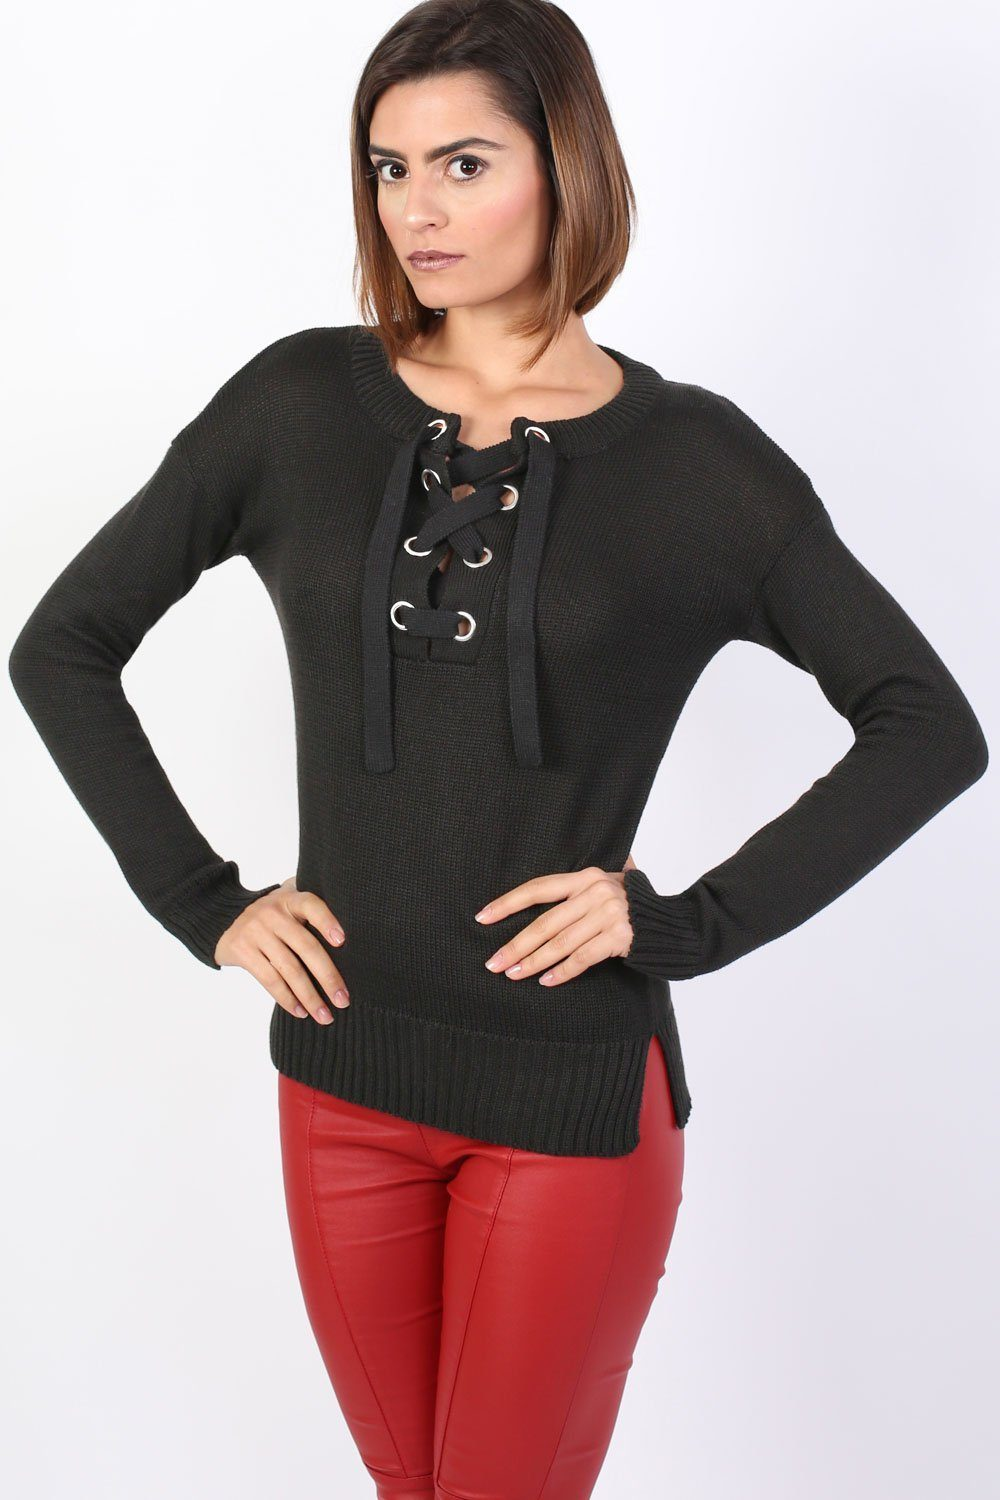 Lace Up Front Long Sleeve Plain Knit Jumper in Black 0